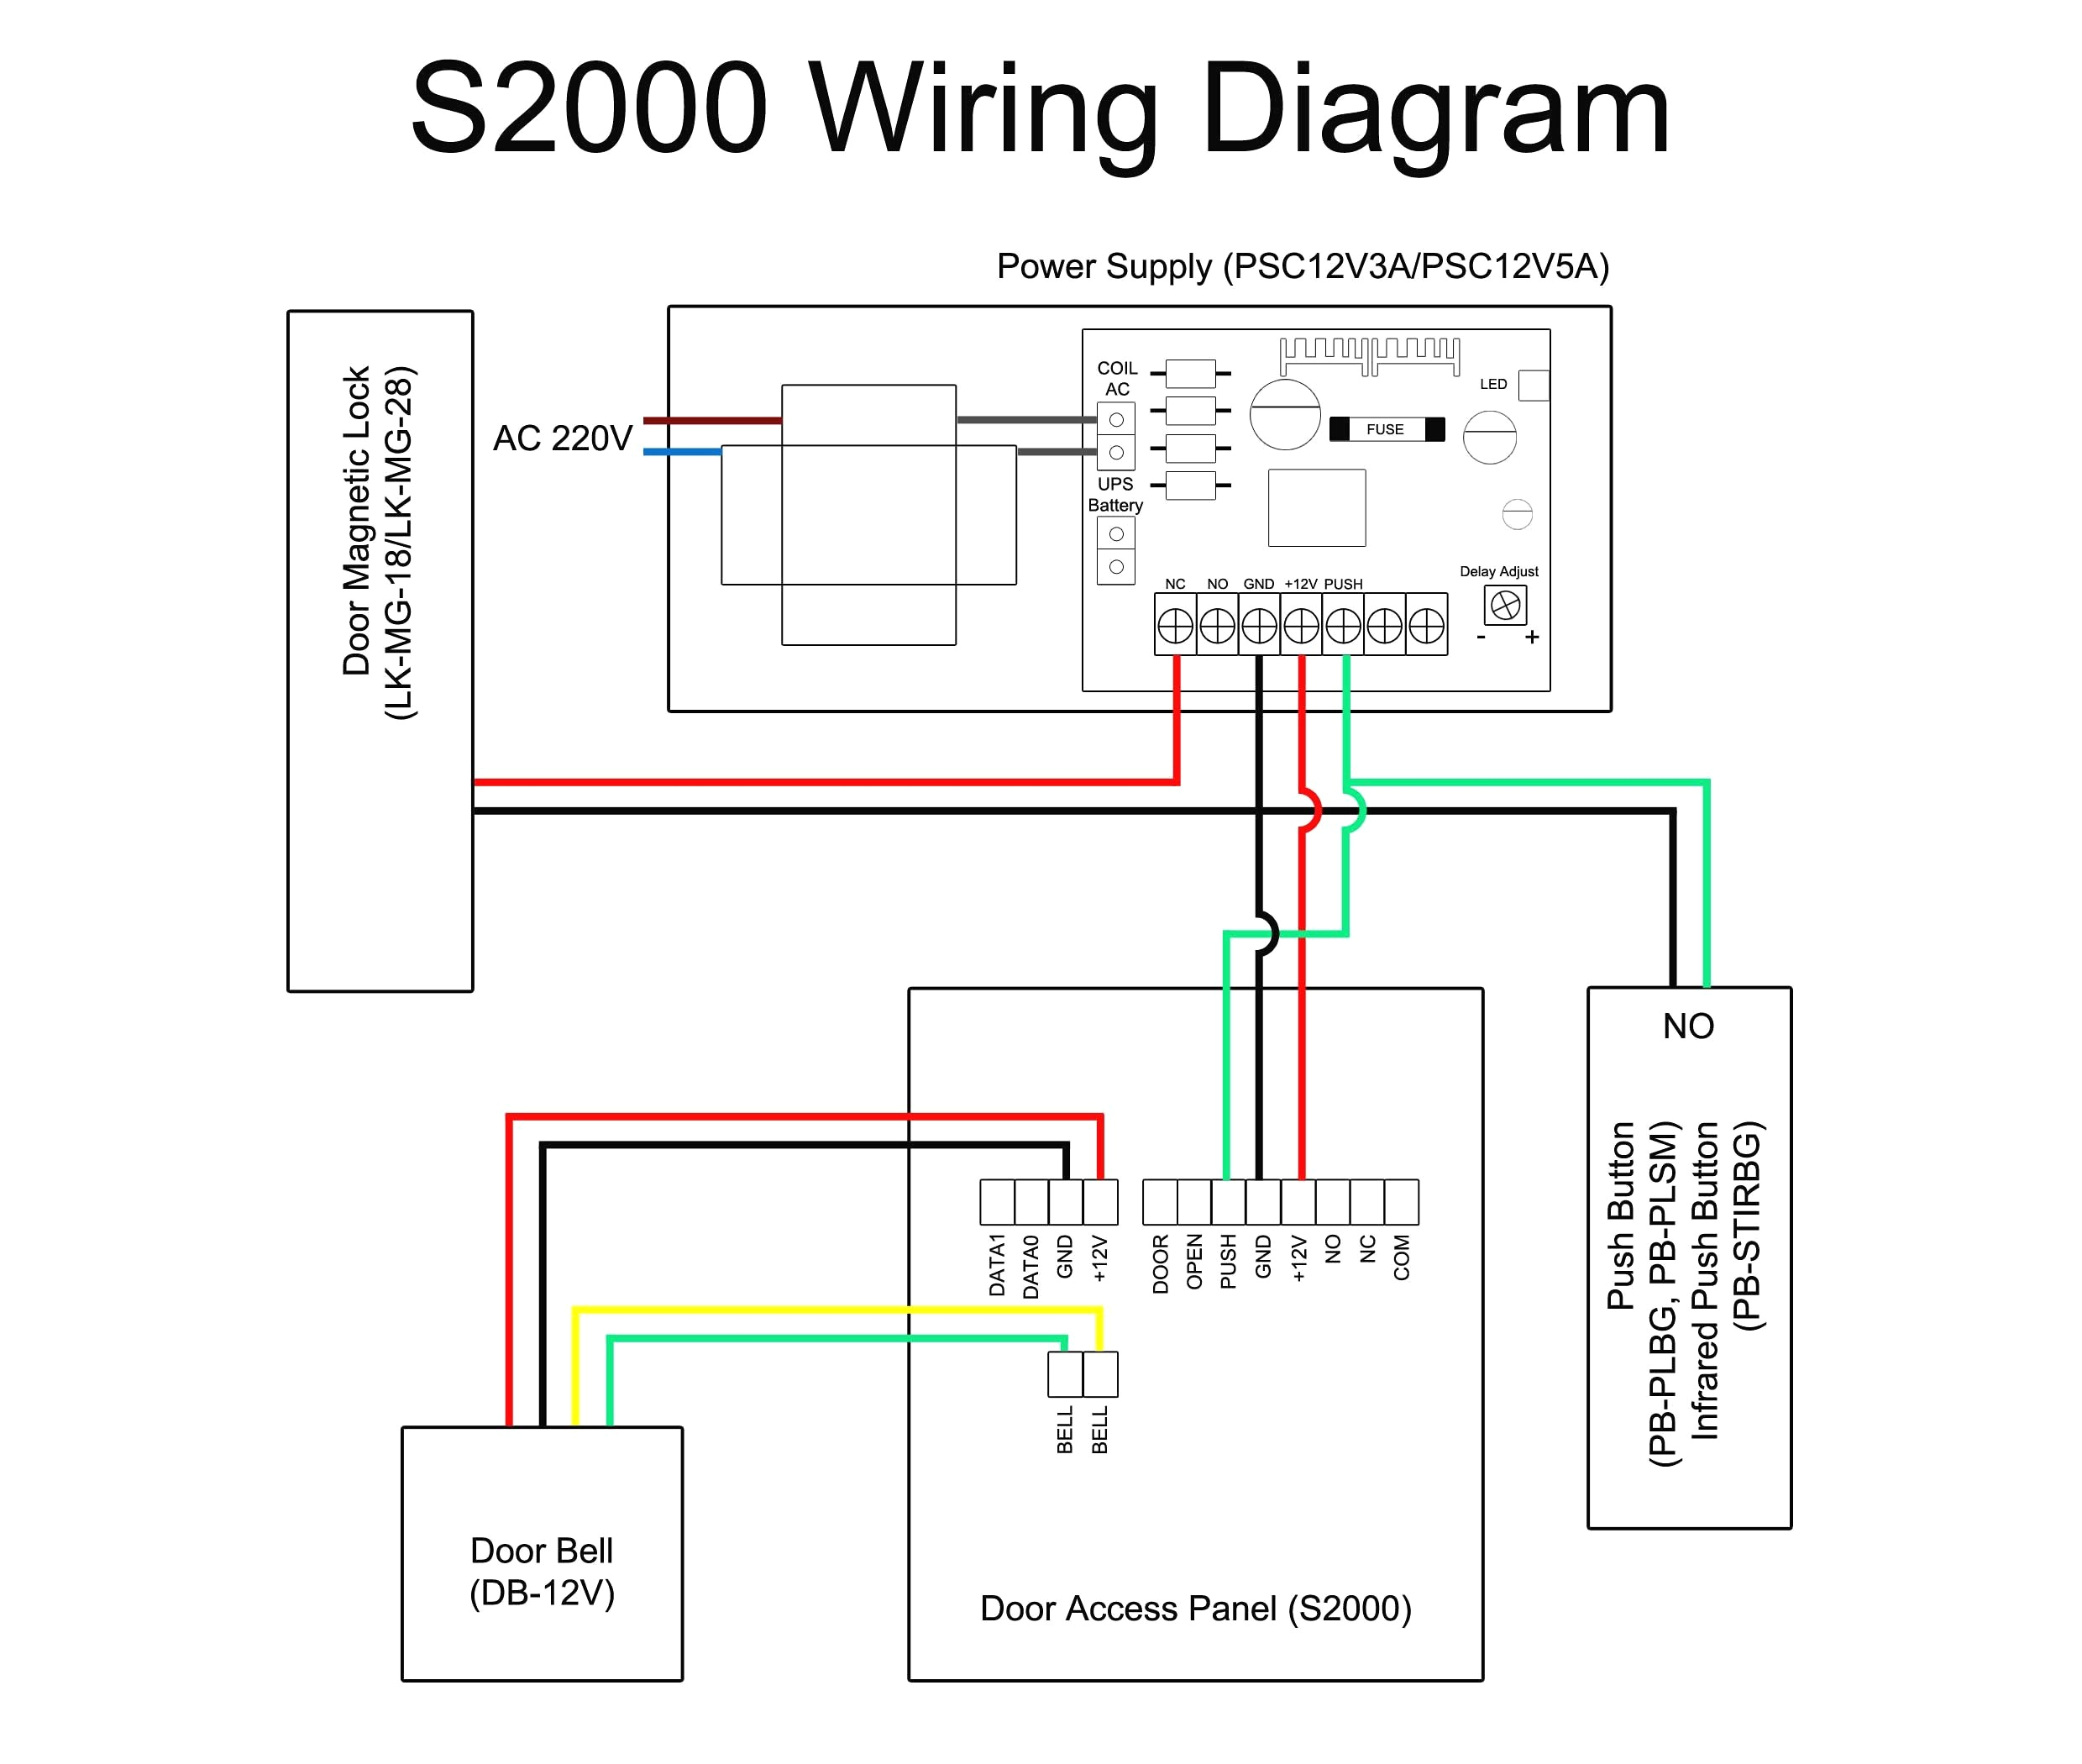 ssc camera wire diagram wiring diagrams208c wiring diagram cam 5